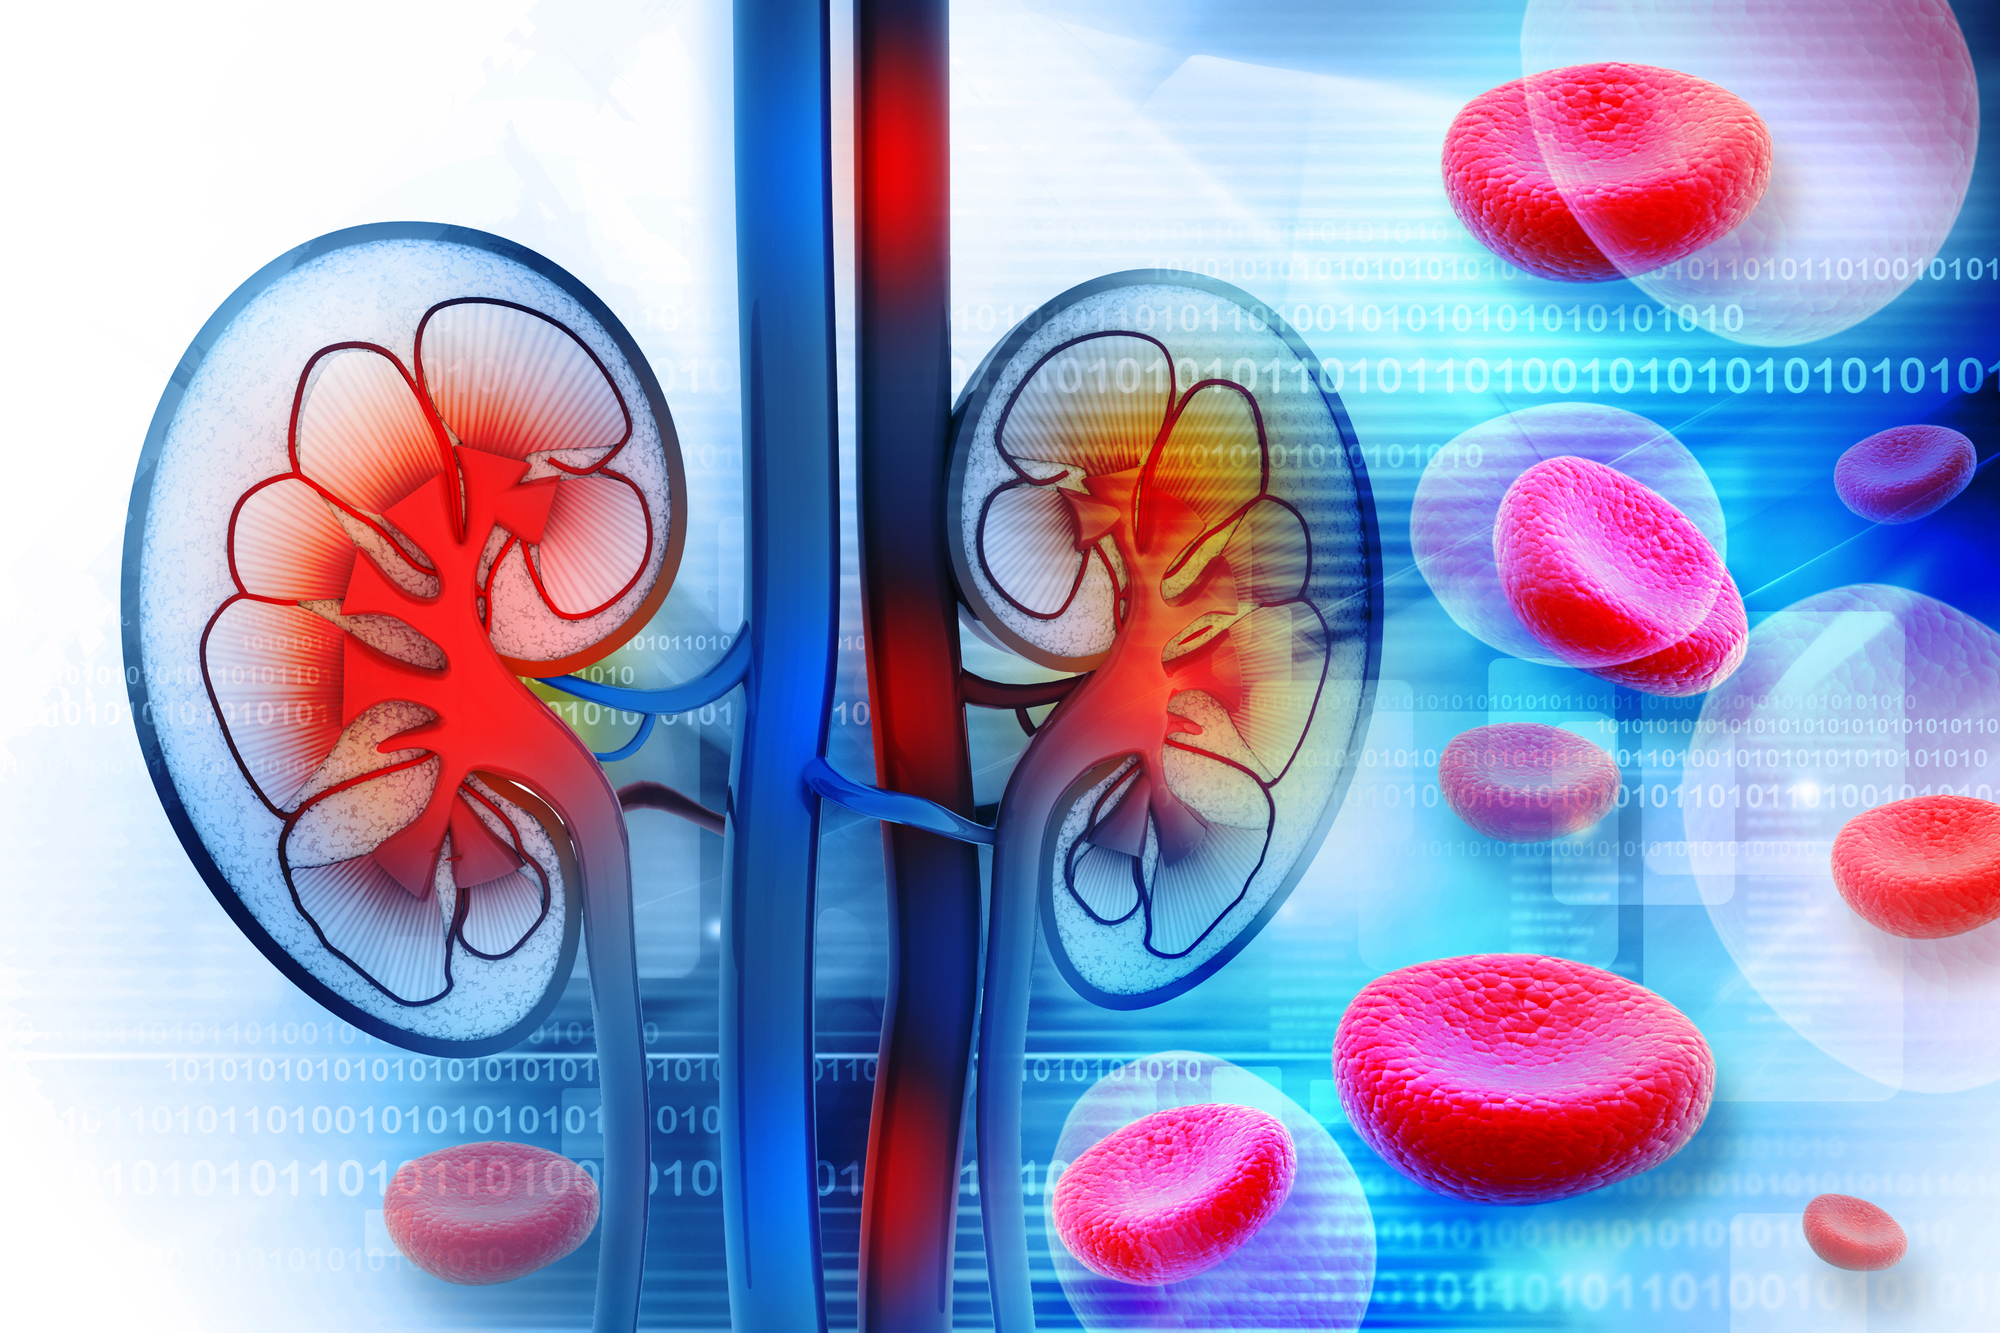 Human kidney cross section - Charity Truth